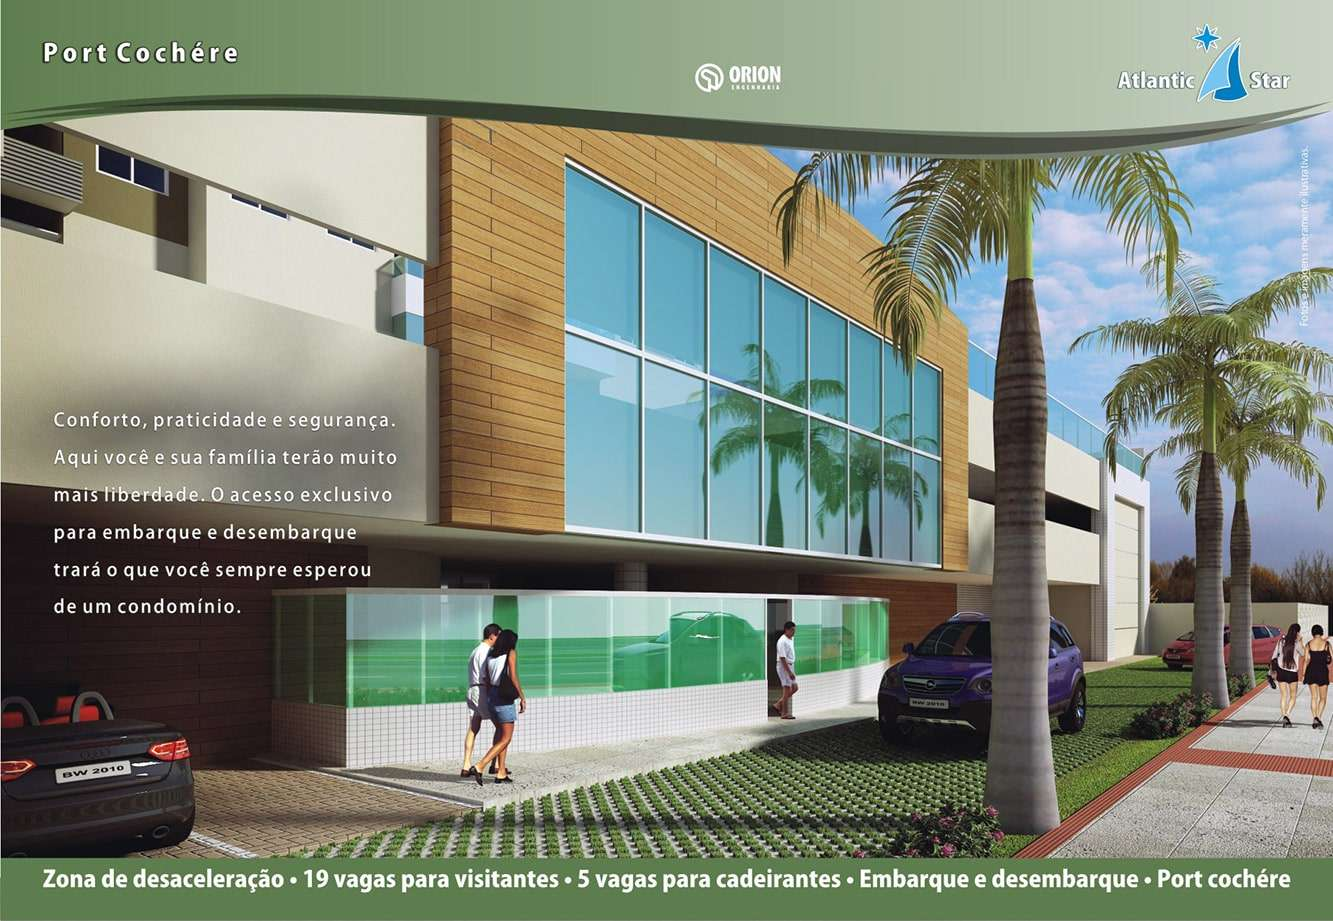 Residencial Atlantic Star   Revista Pagina06 07